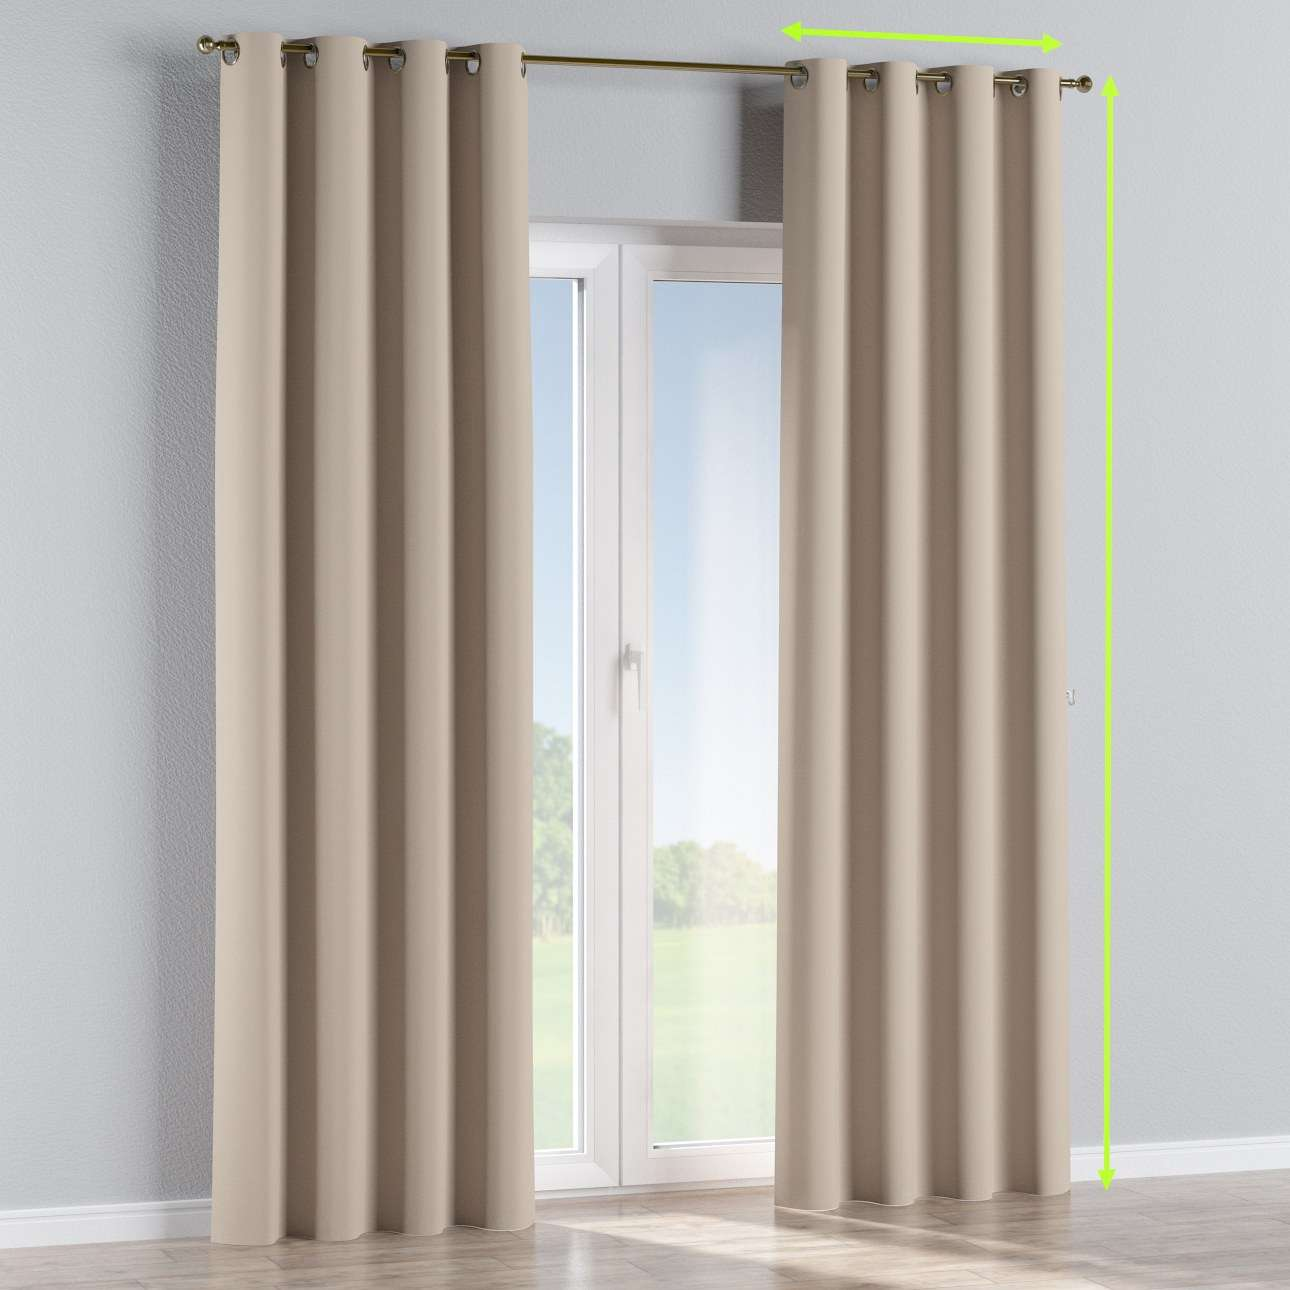 Blackout eyelet curtains in collection Blackout, fabric: 269-00